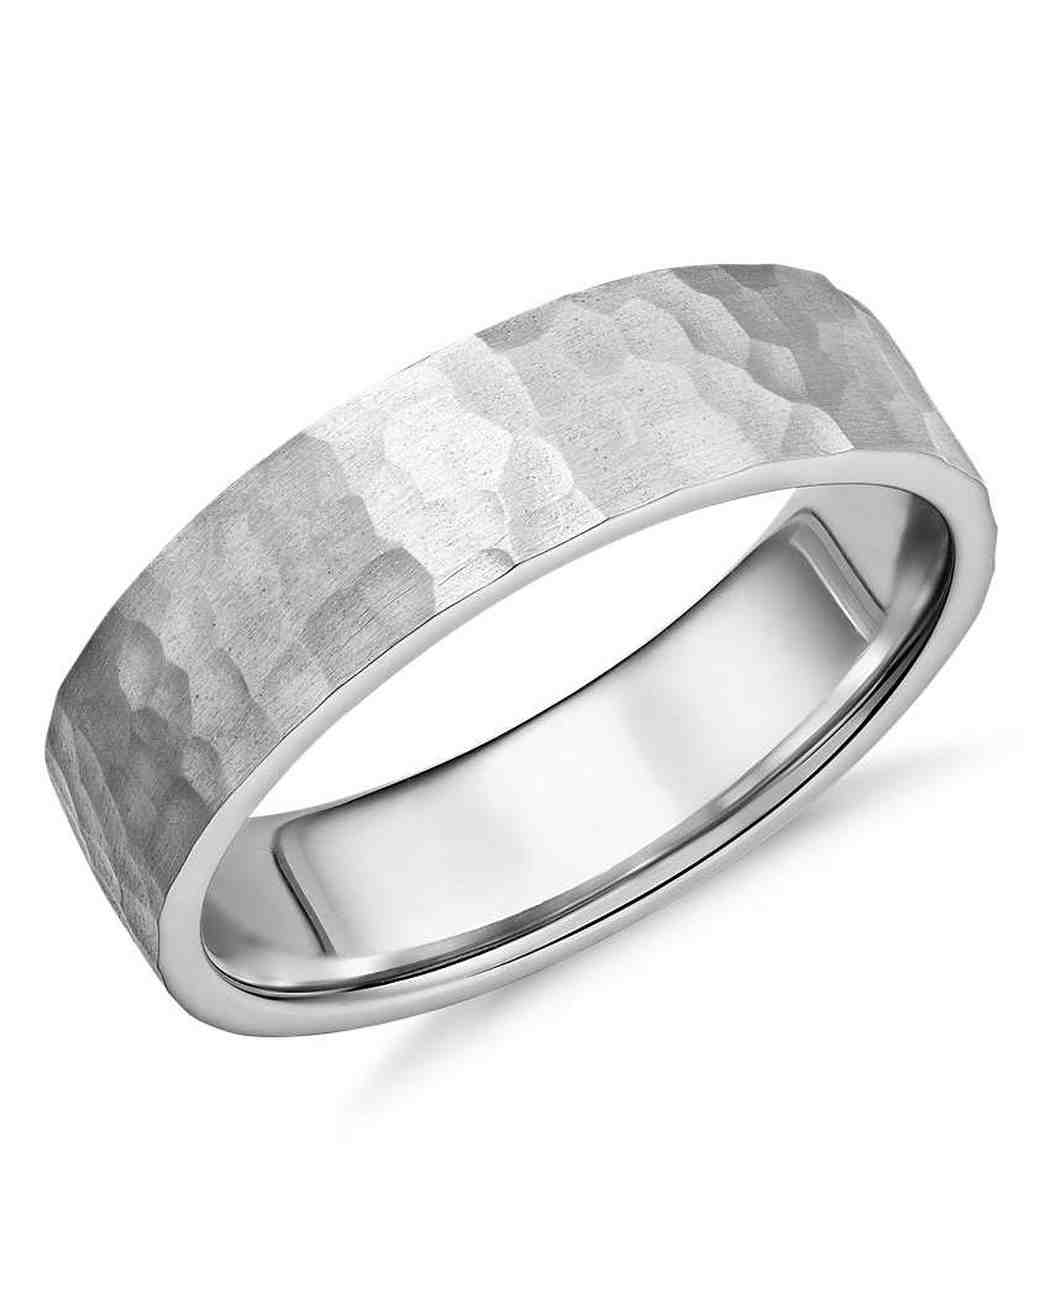 blue-nile-hammered-platinum-mens-wedding-band-0216.jpg